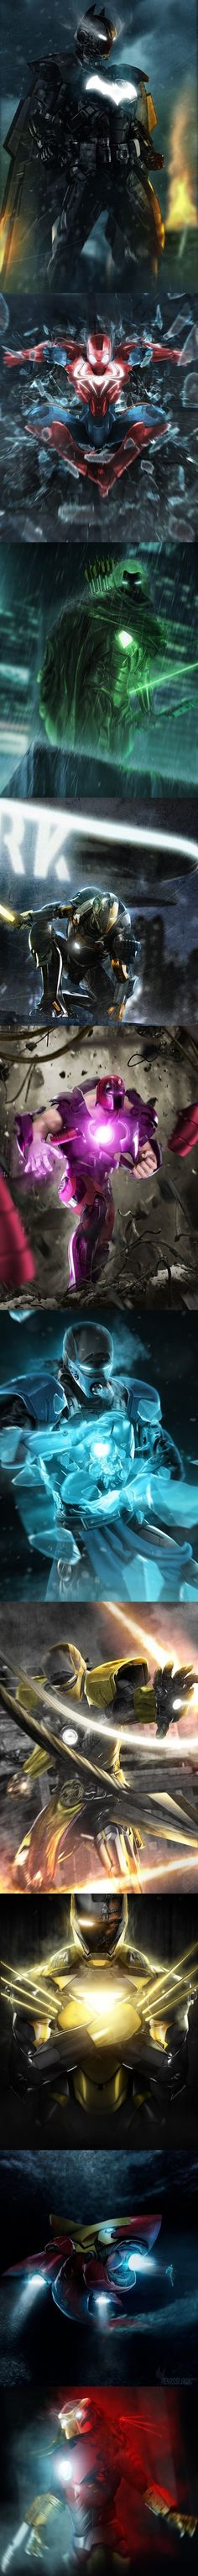 #IronMan #Mashups- can I just say the thought of a wolverine iron man suit gives me goose bumps #marvel / #DC #Comics